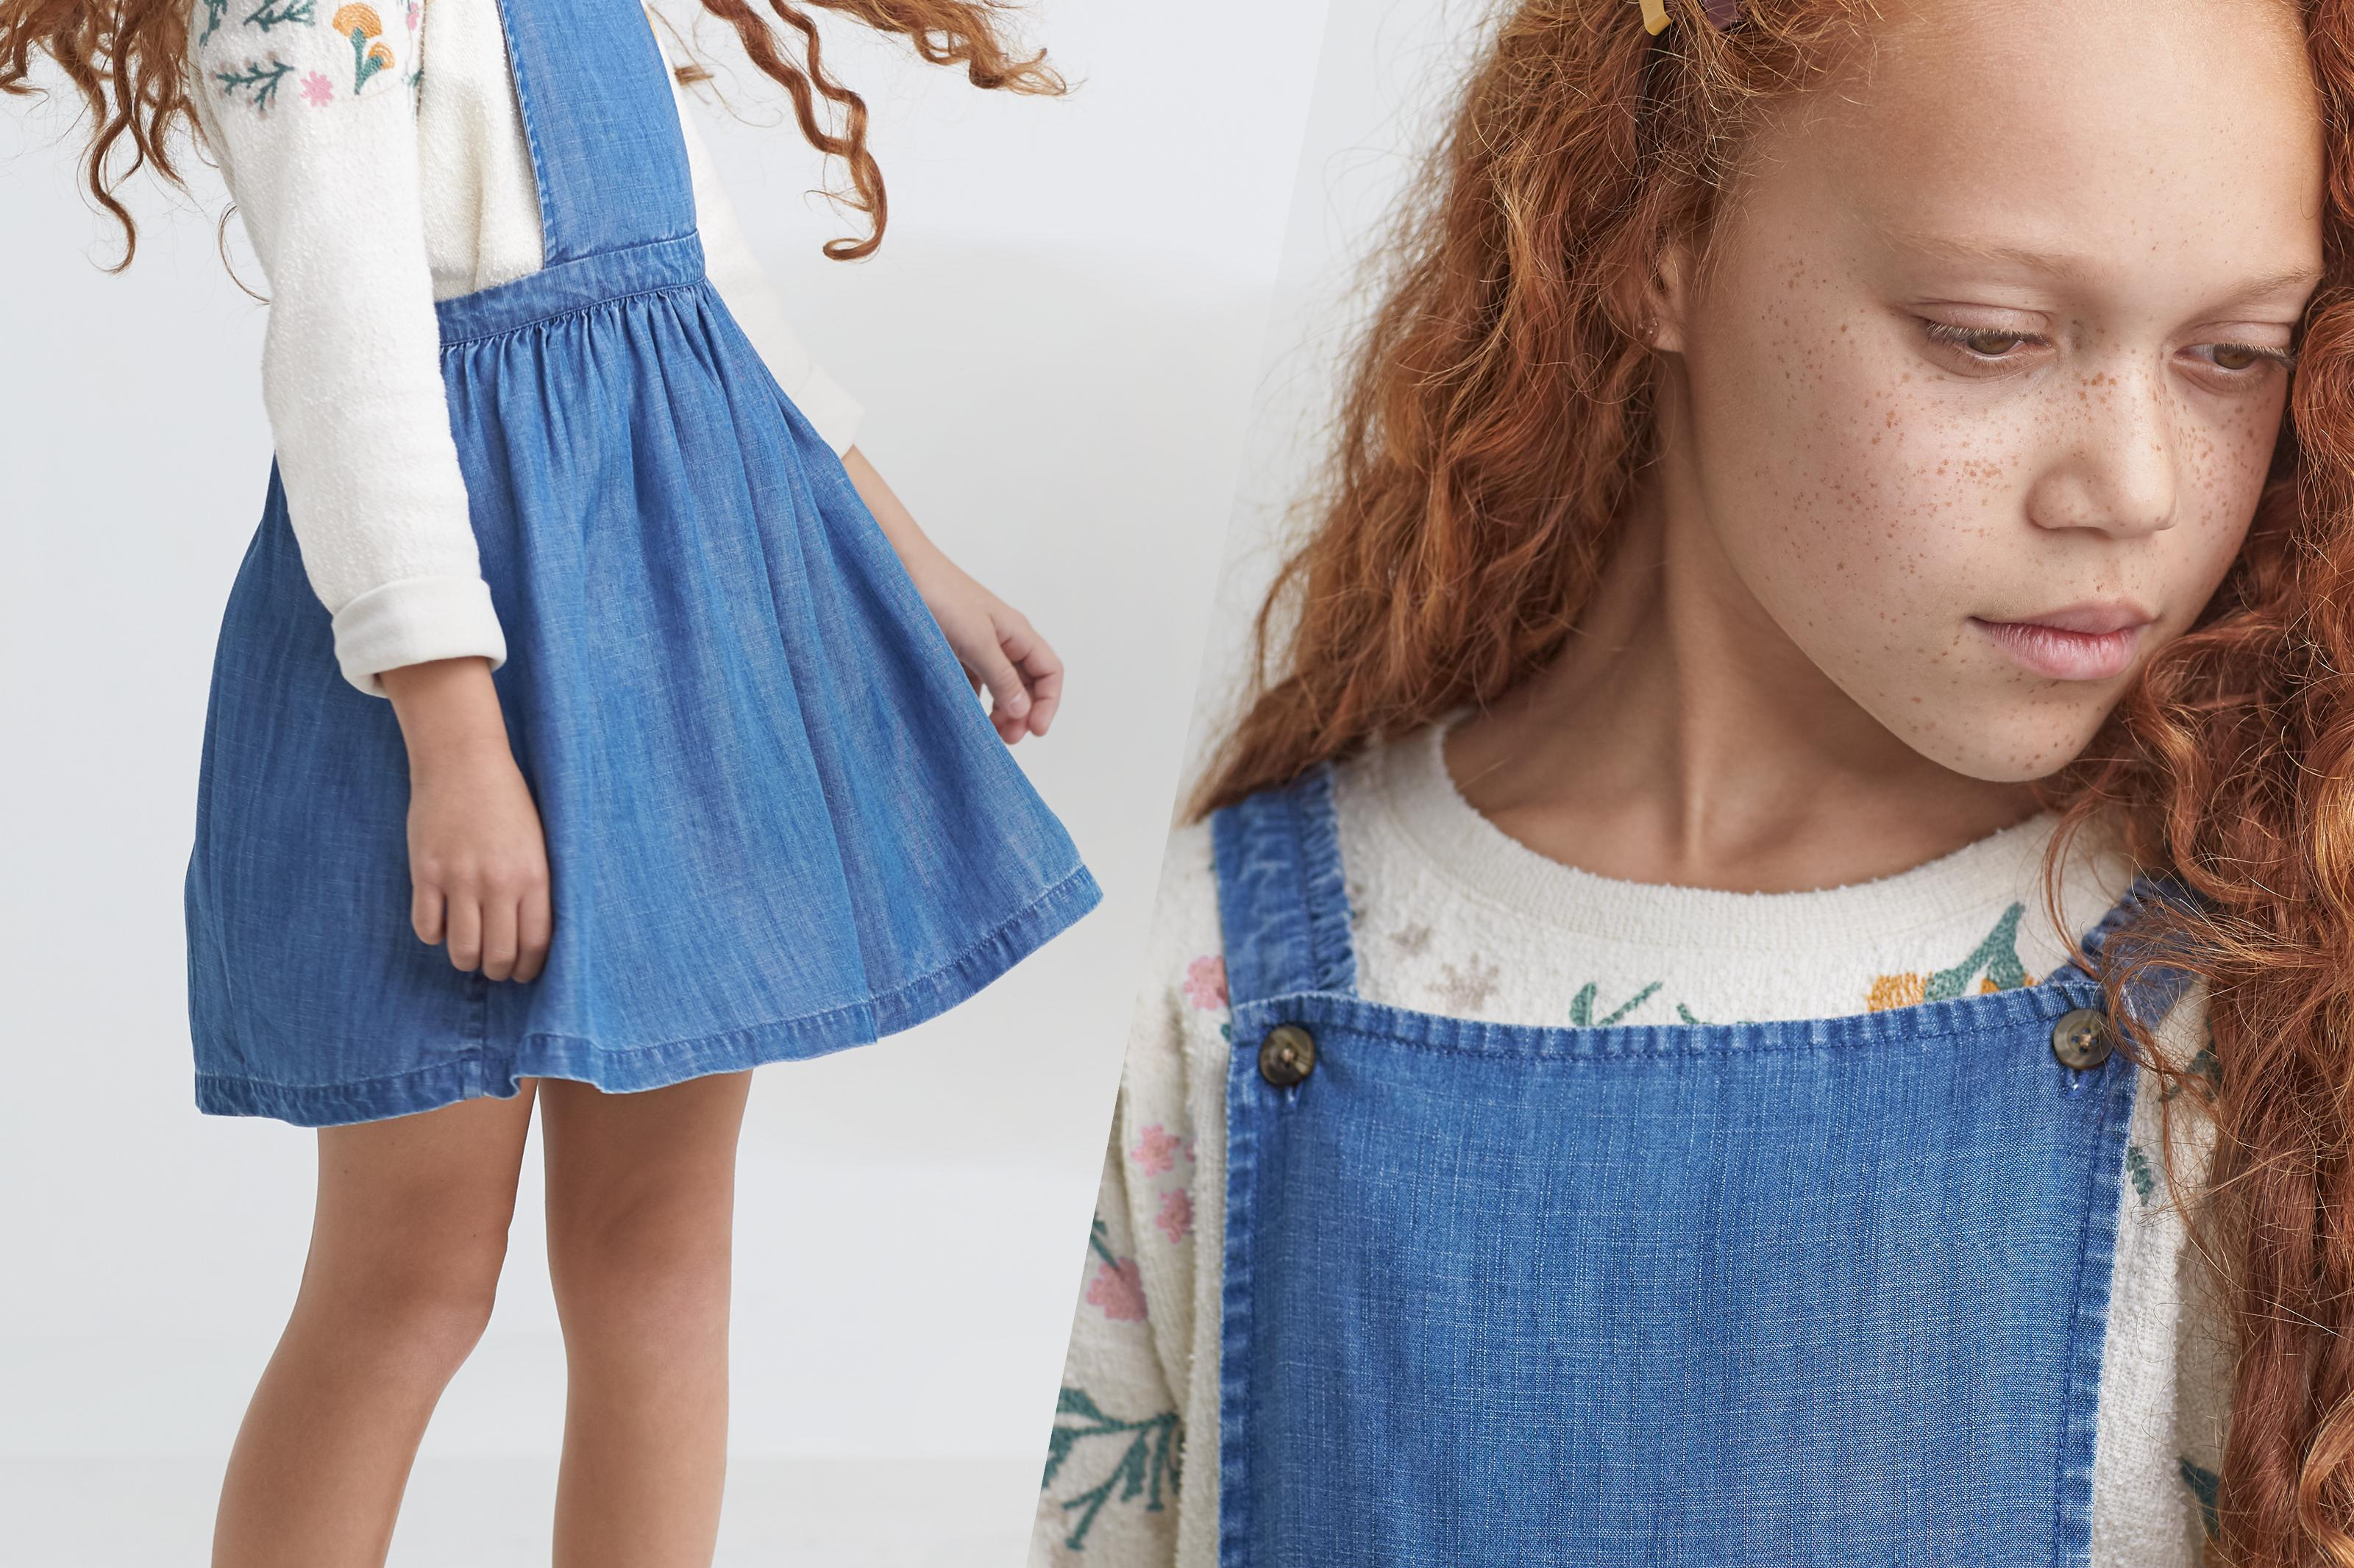 Two close up shots of a girl model wearing a denim pinafore dress with a floral embroidered ivory jumper.